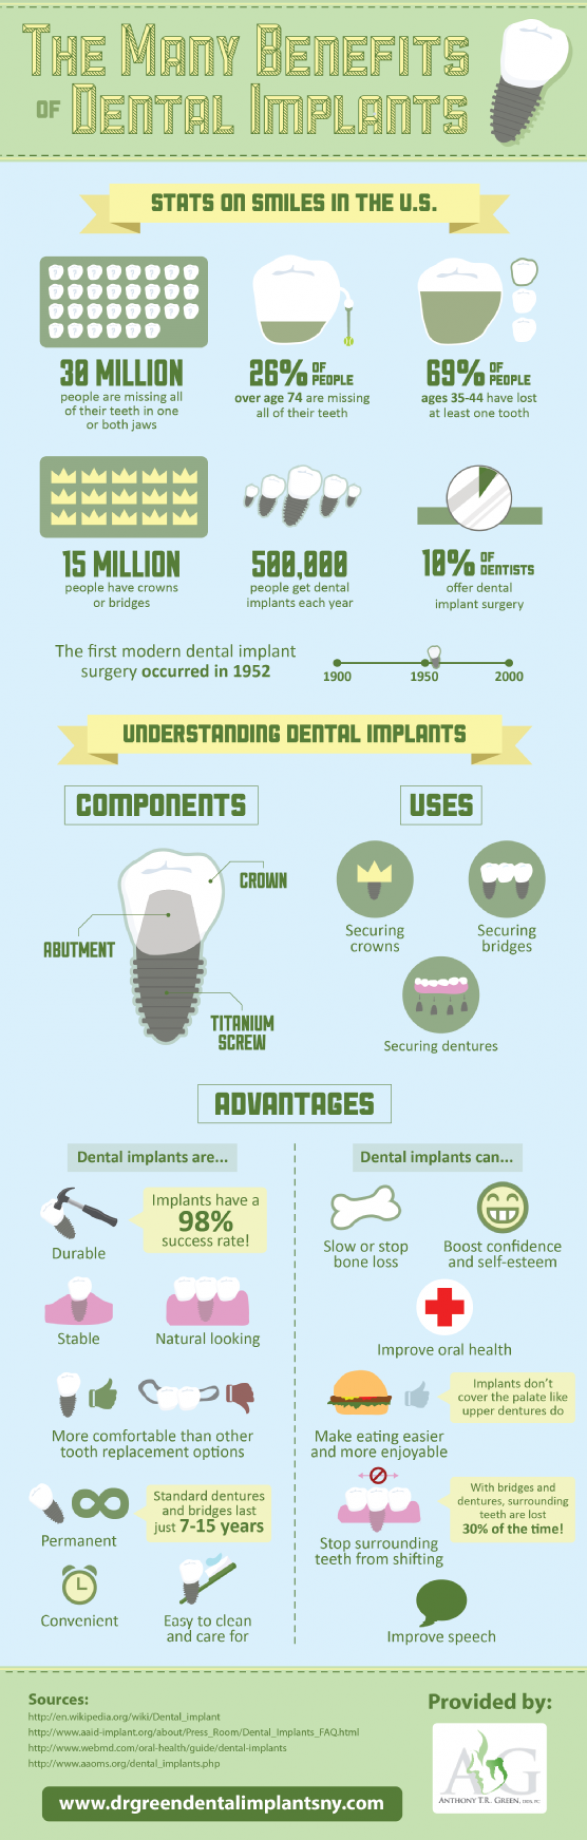 Dental Implants: Facts,Figures and Benefits